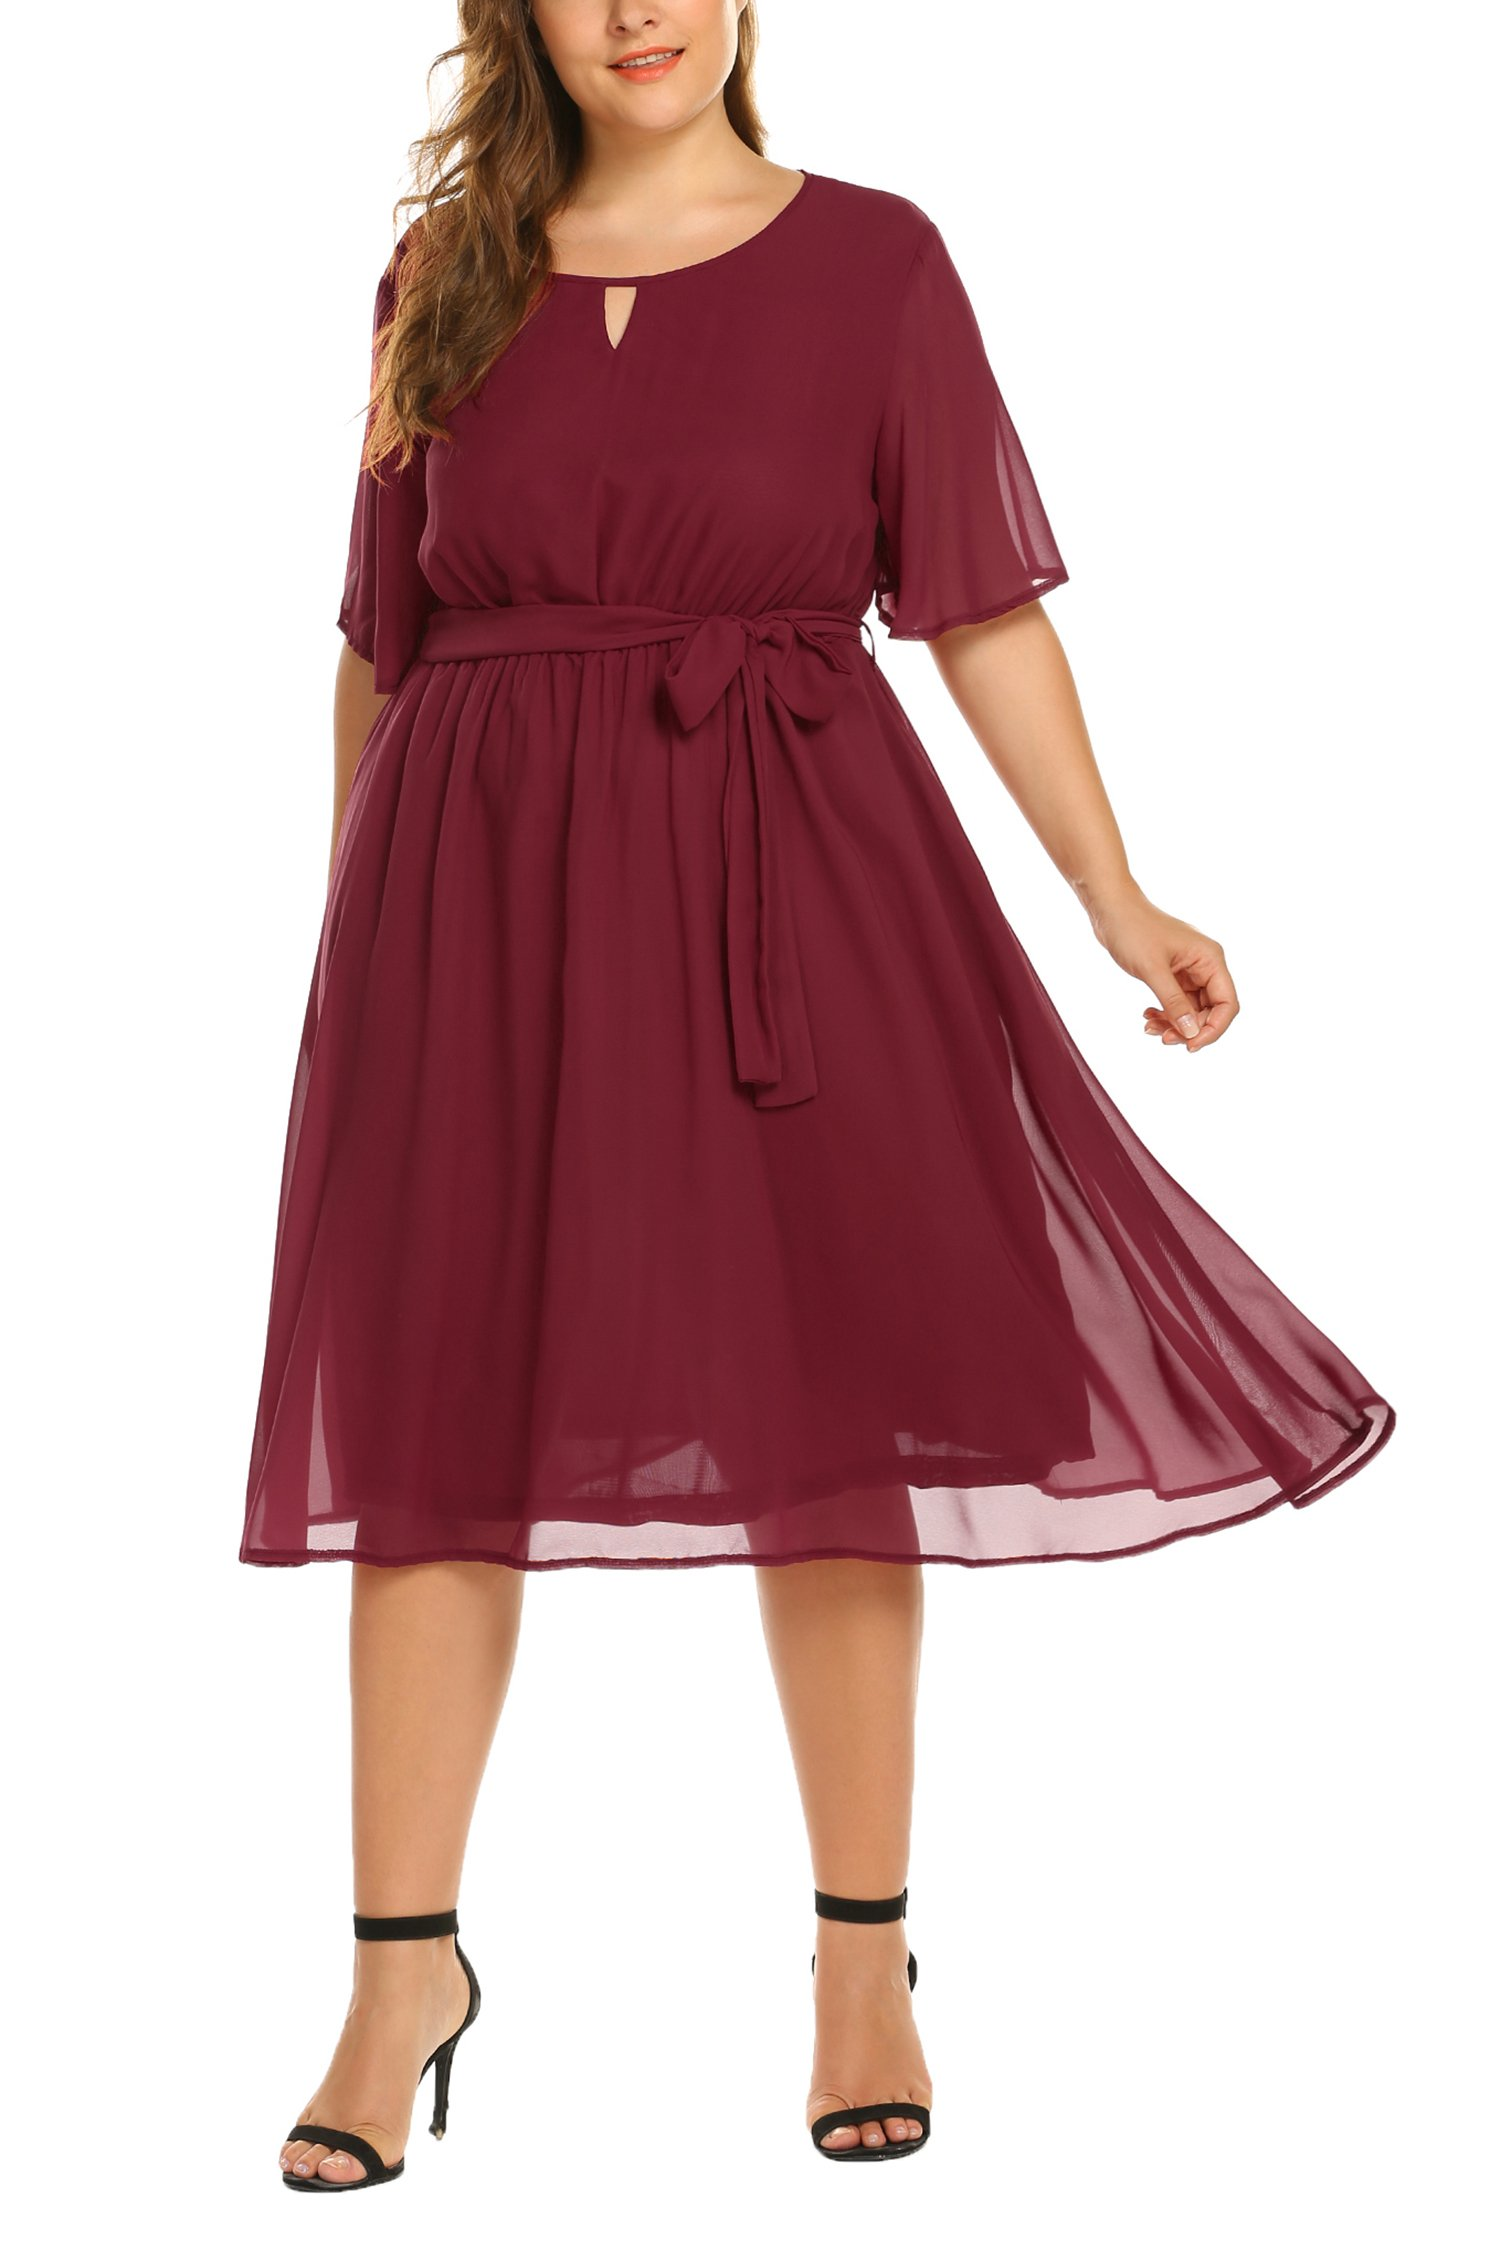 IN'VOLAND Women's Plus Size Casual Short Flutter Sleeve O Neck Flare Flow Chiffon Long Formal Midi Dress